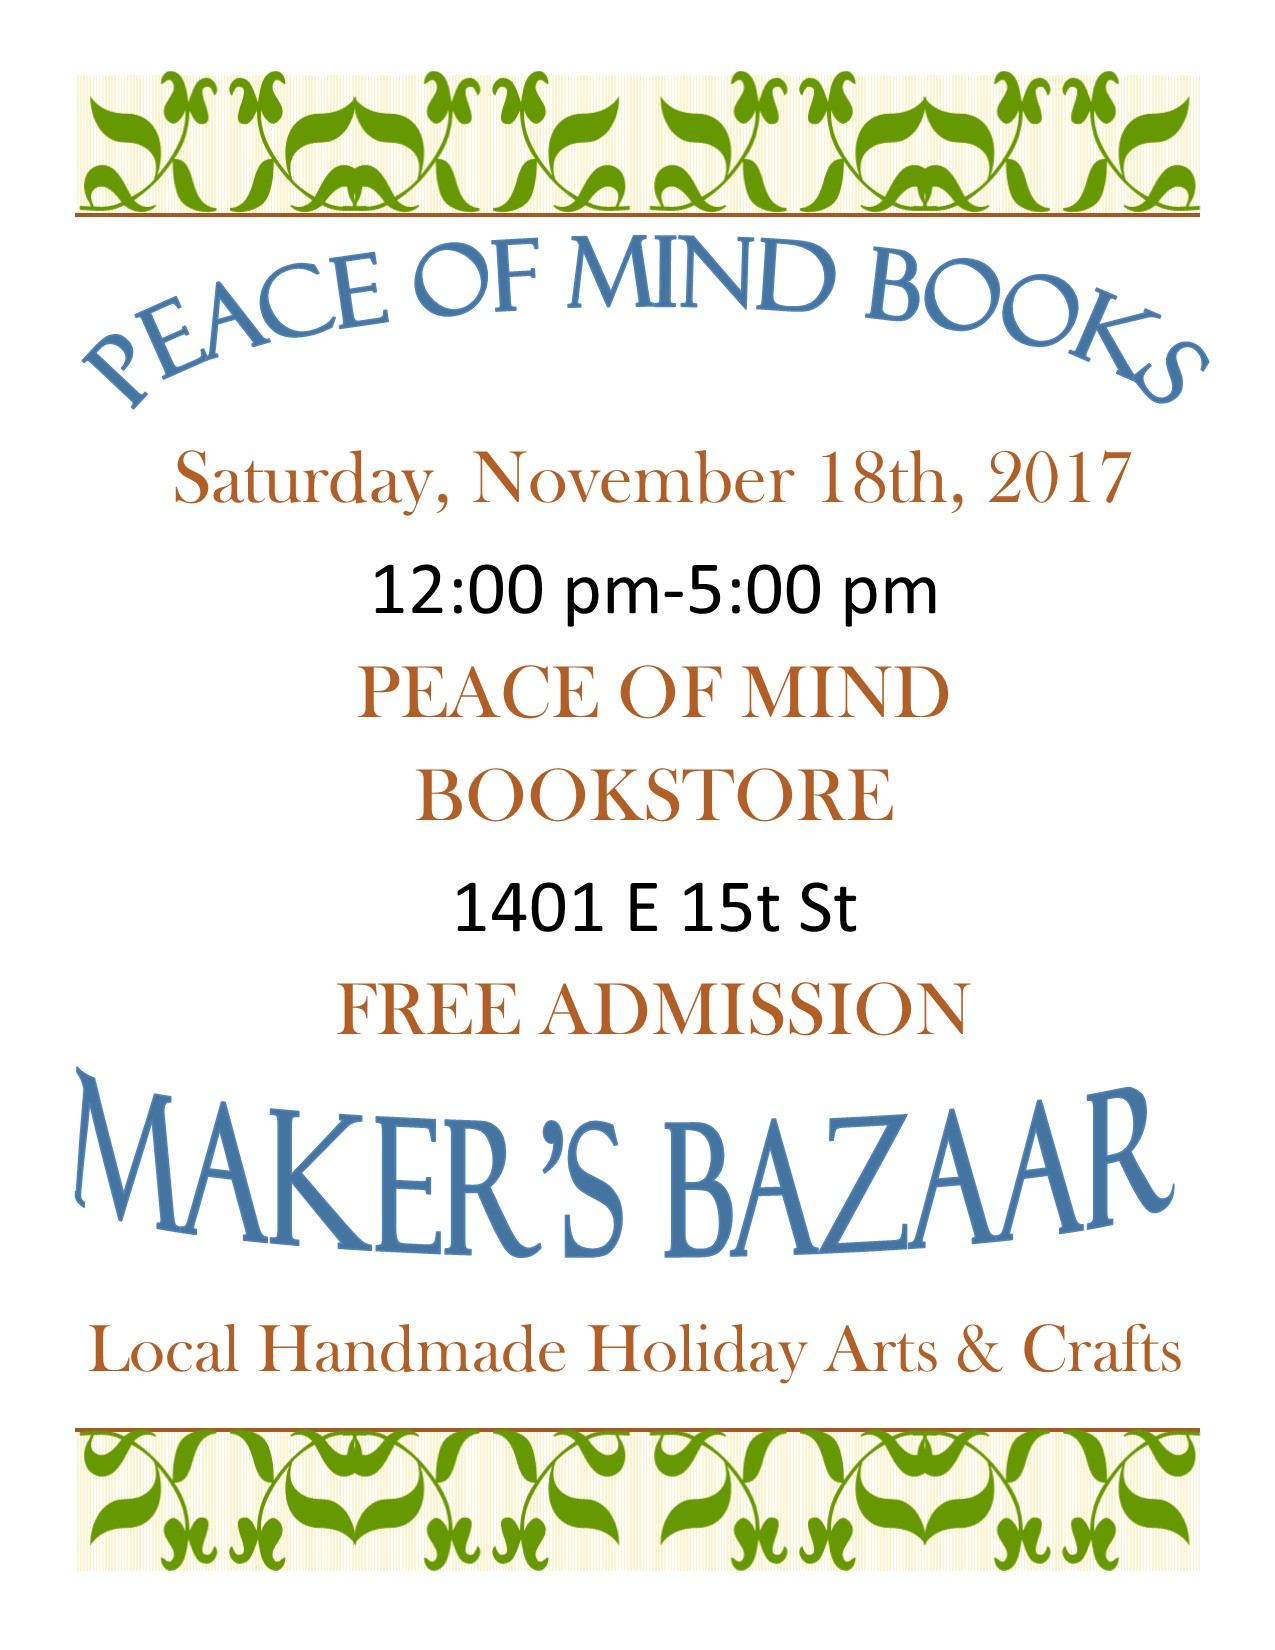 Maker's Bazaar Arts and Crafts